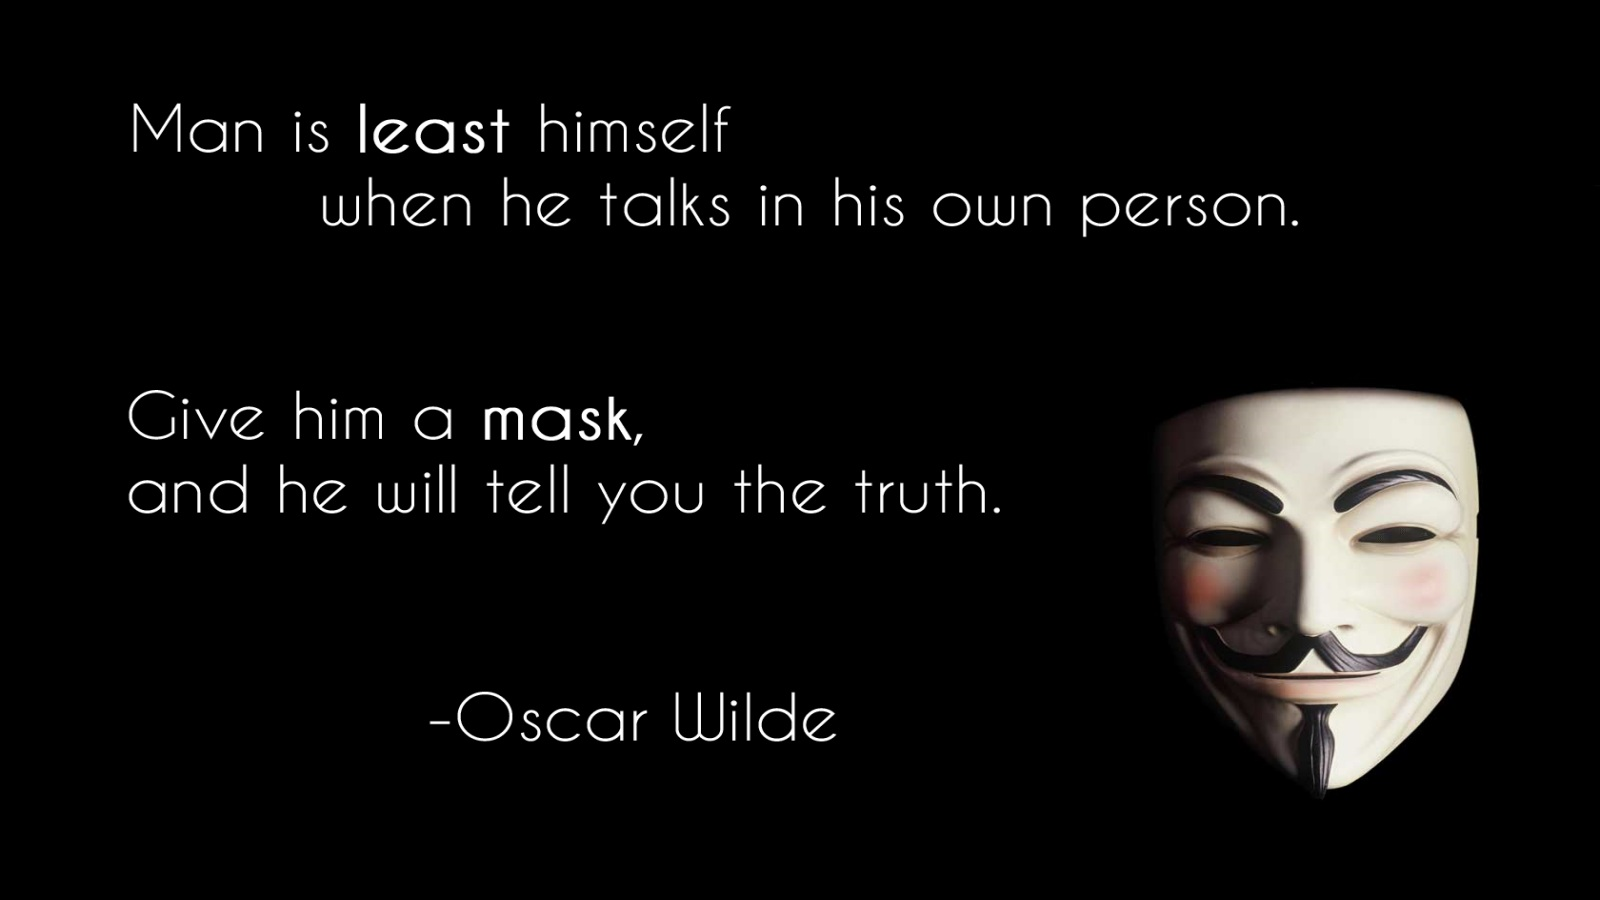 Man Is Least Himself When He Talks In His Own Person. Give Him a Mask, And He Will Tell You The Truth. - Oscar Wilde